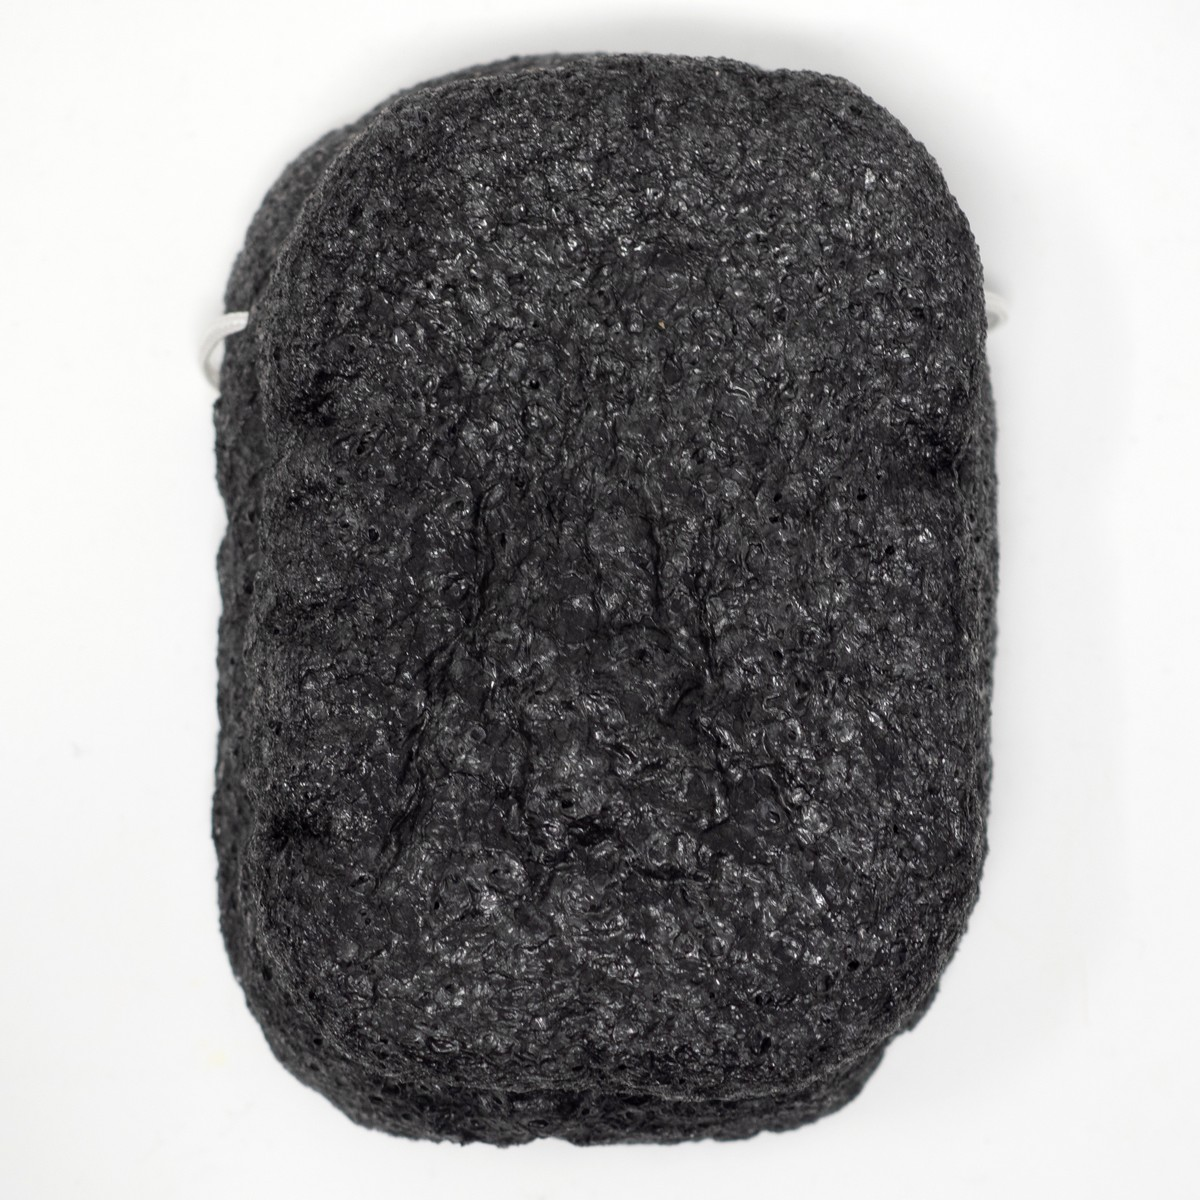 Photo of Binchotan Charcoal Facial Puff